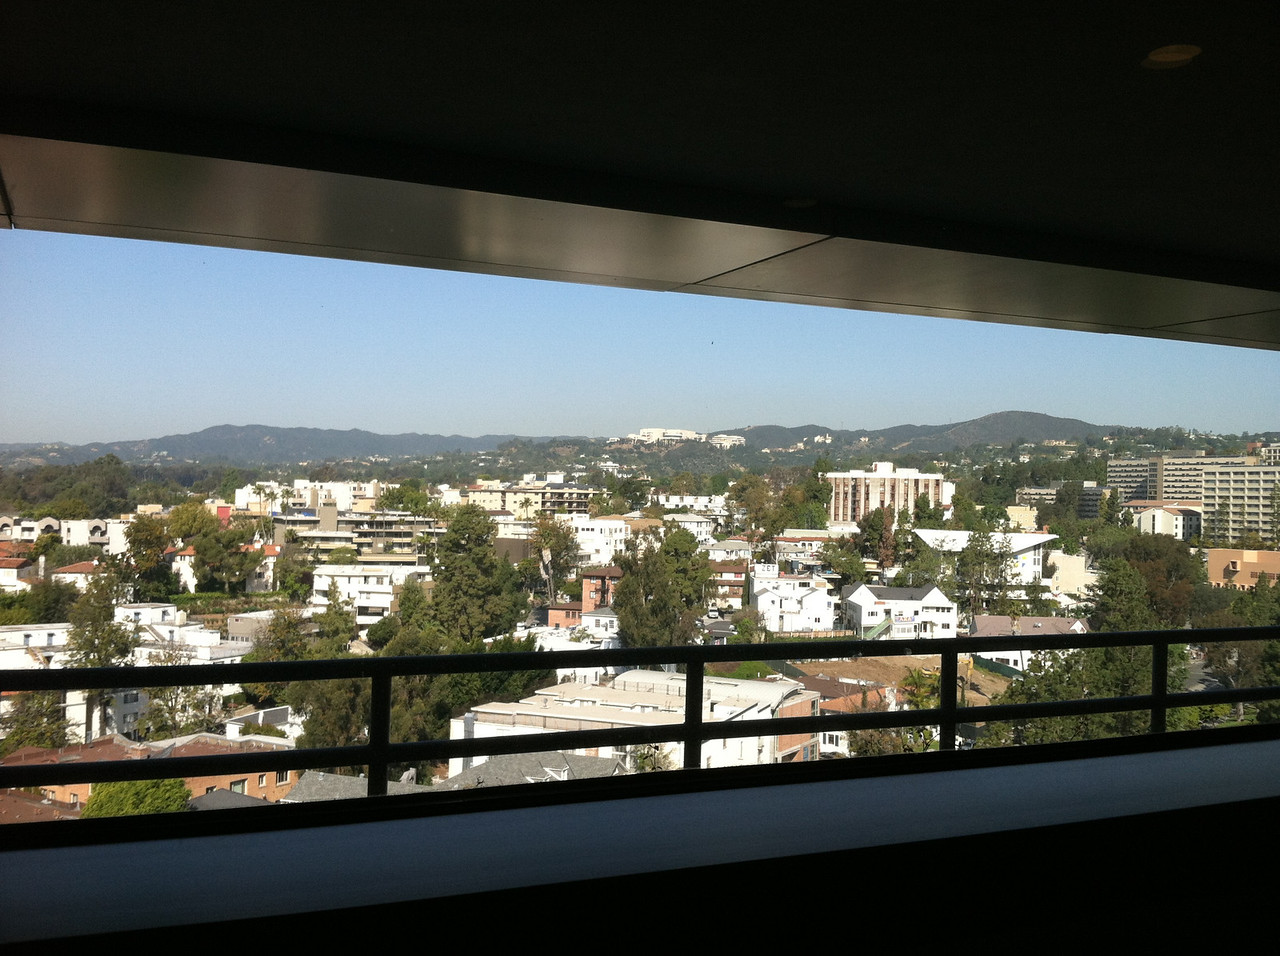 View from the Ronald Reagan Hospital